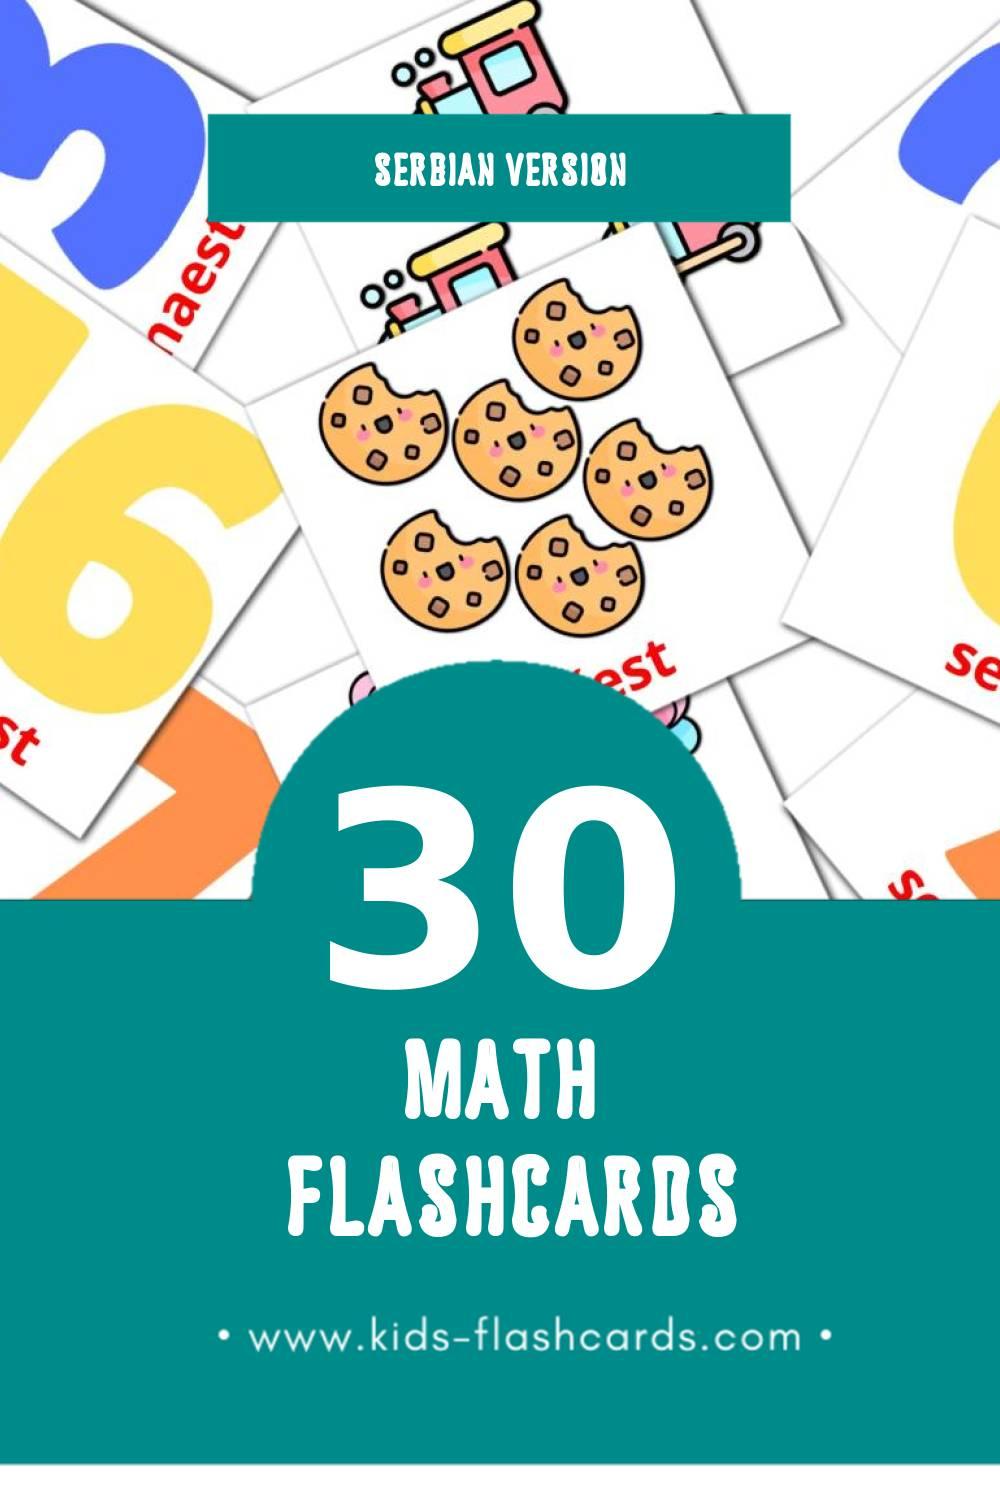 Visual Matematika Flashcards for Toddlers (30 cards in Serbian)